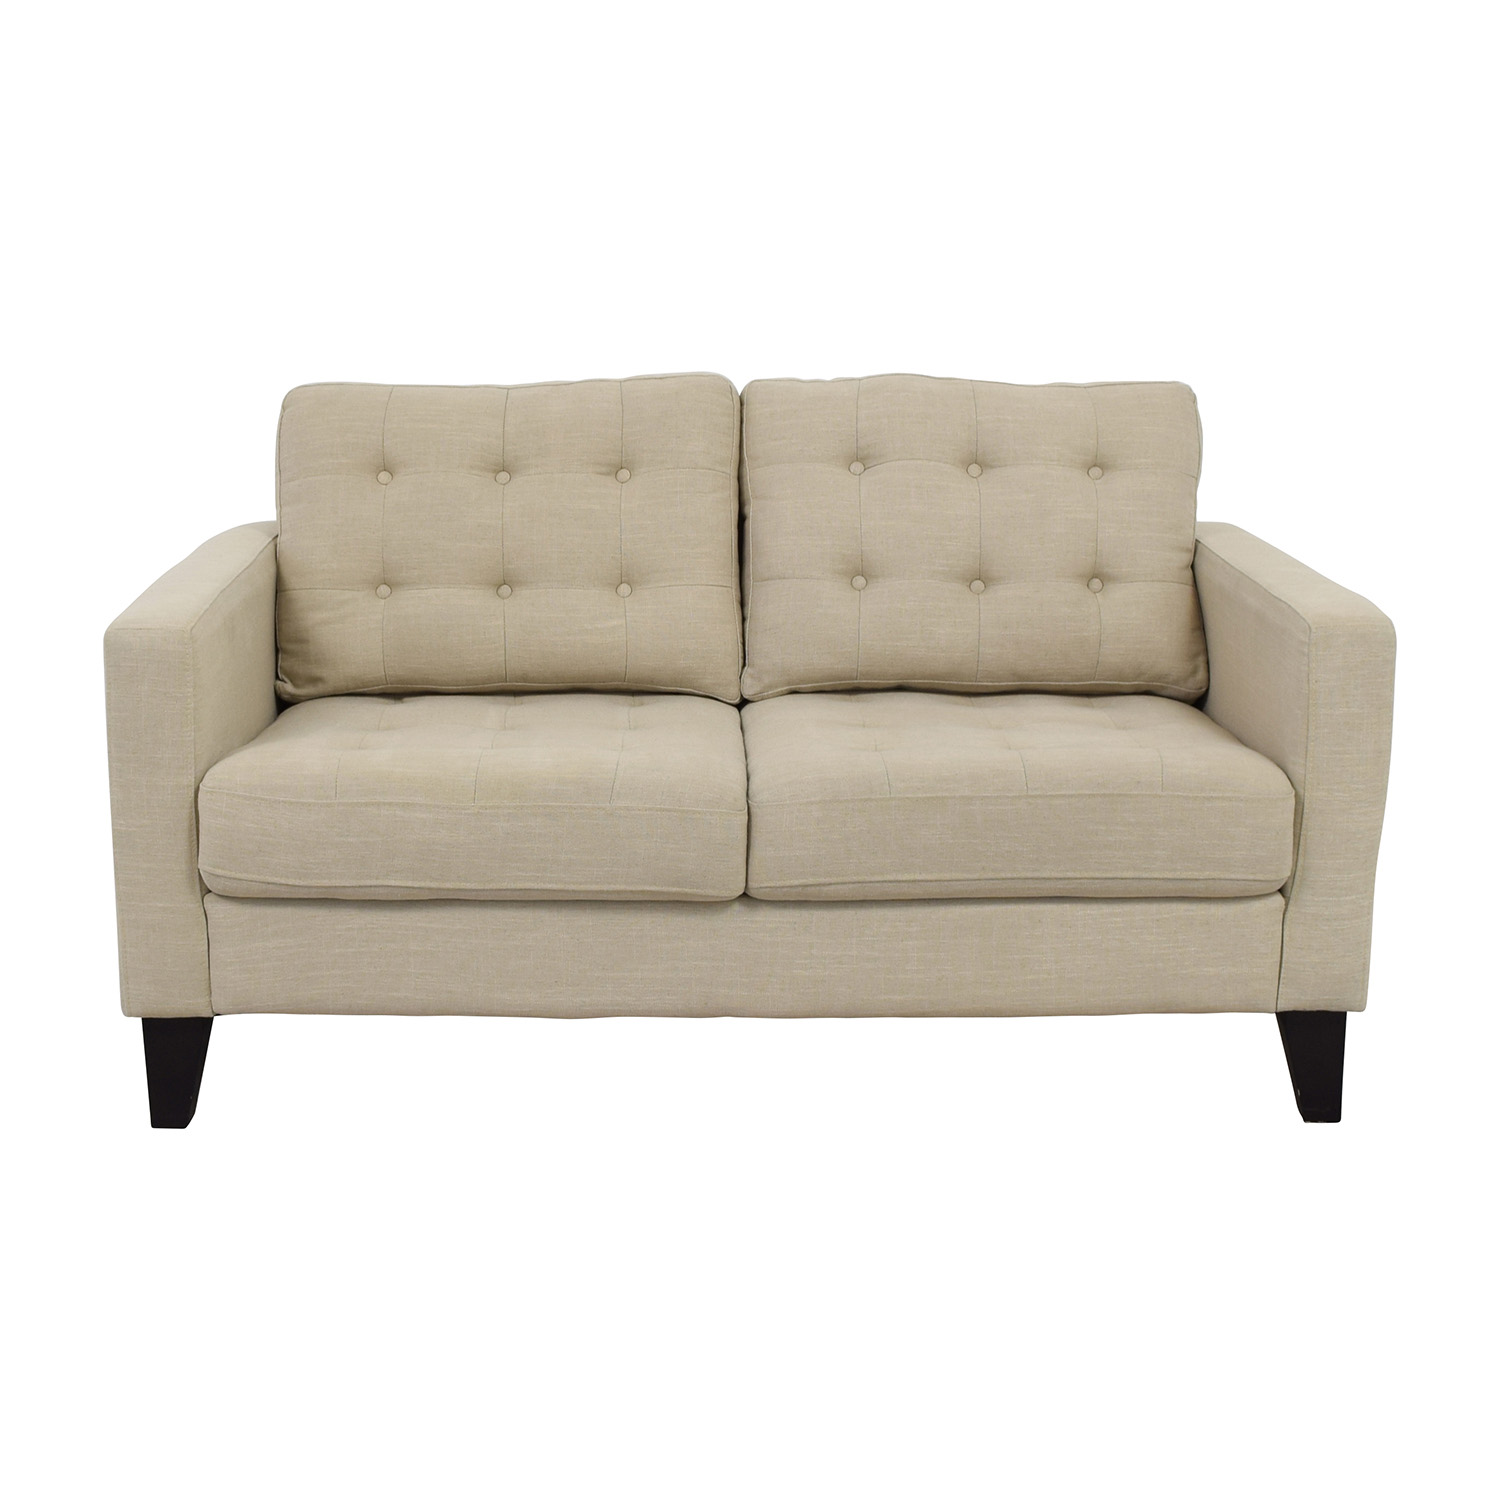 Pier 1 Imports Pier 1 Imports Putty Tan Tufted Loveseat Sofas